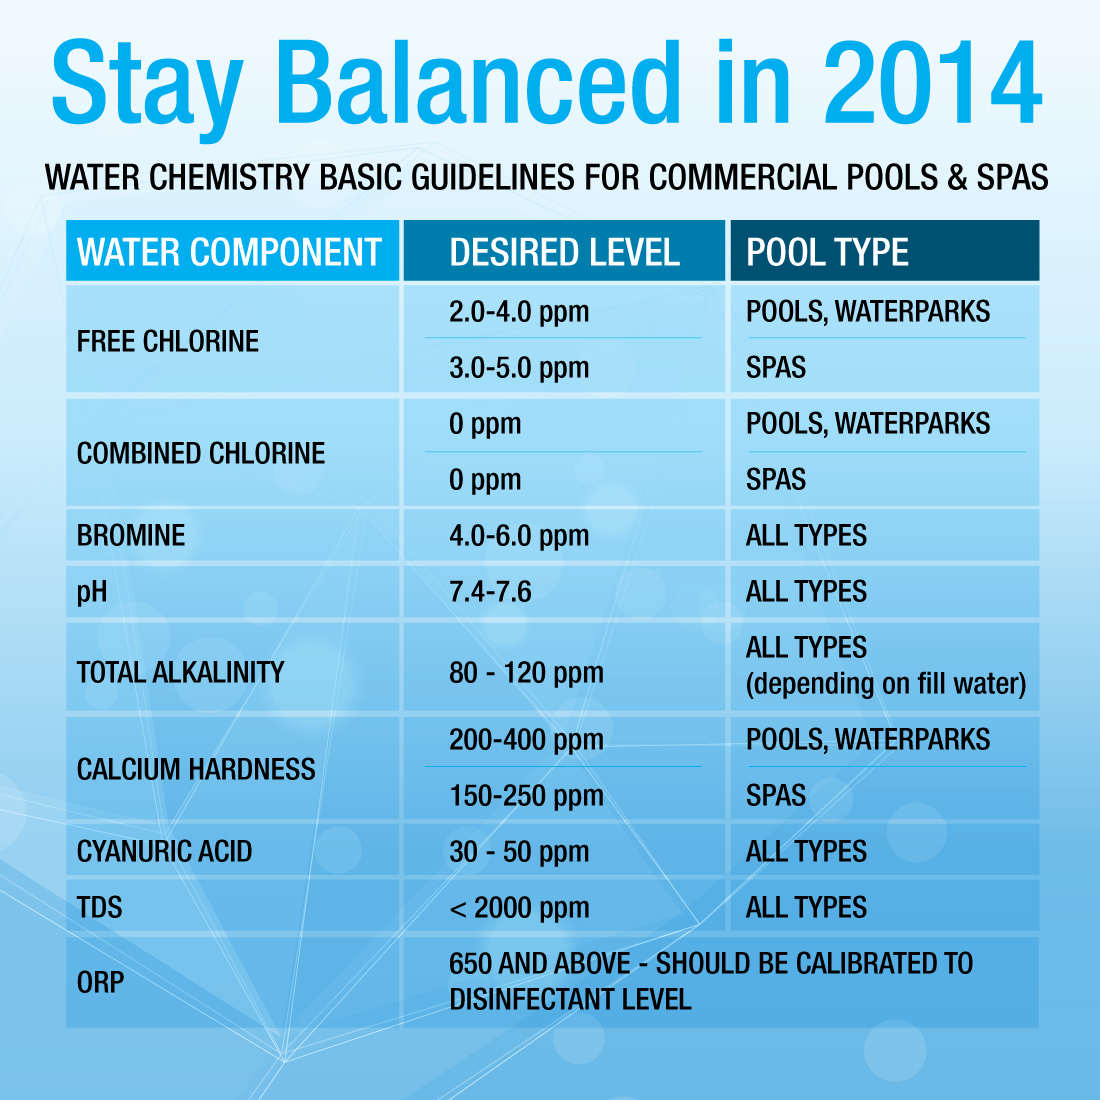 WaterChemistryBasicsInfographic_CommercialPools